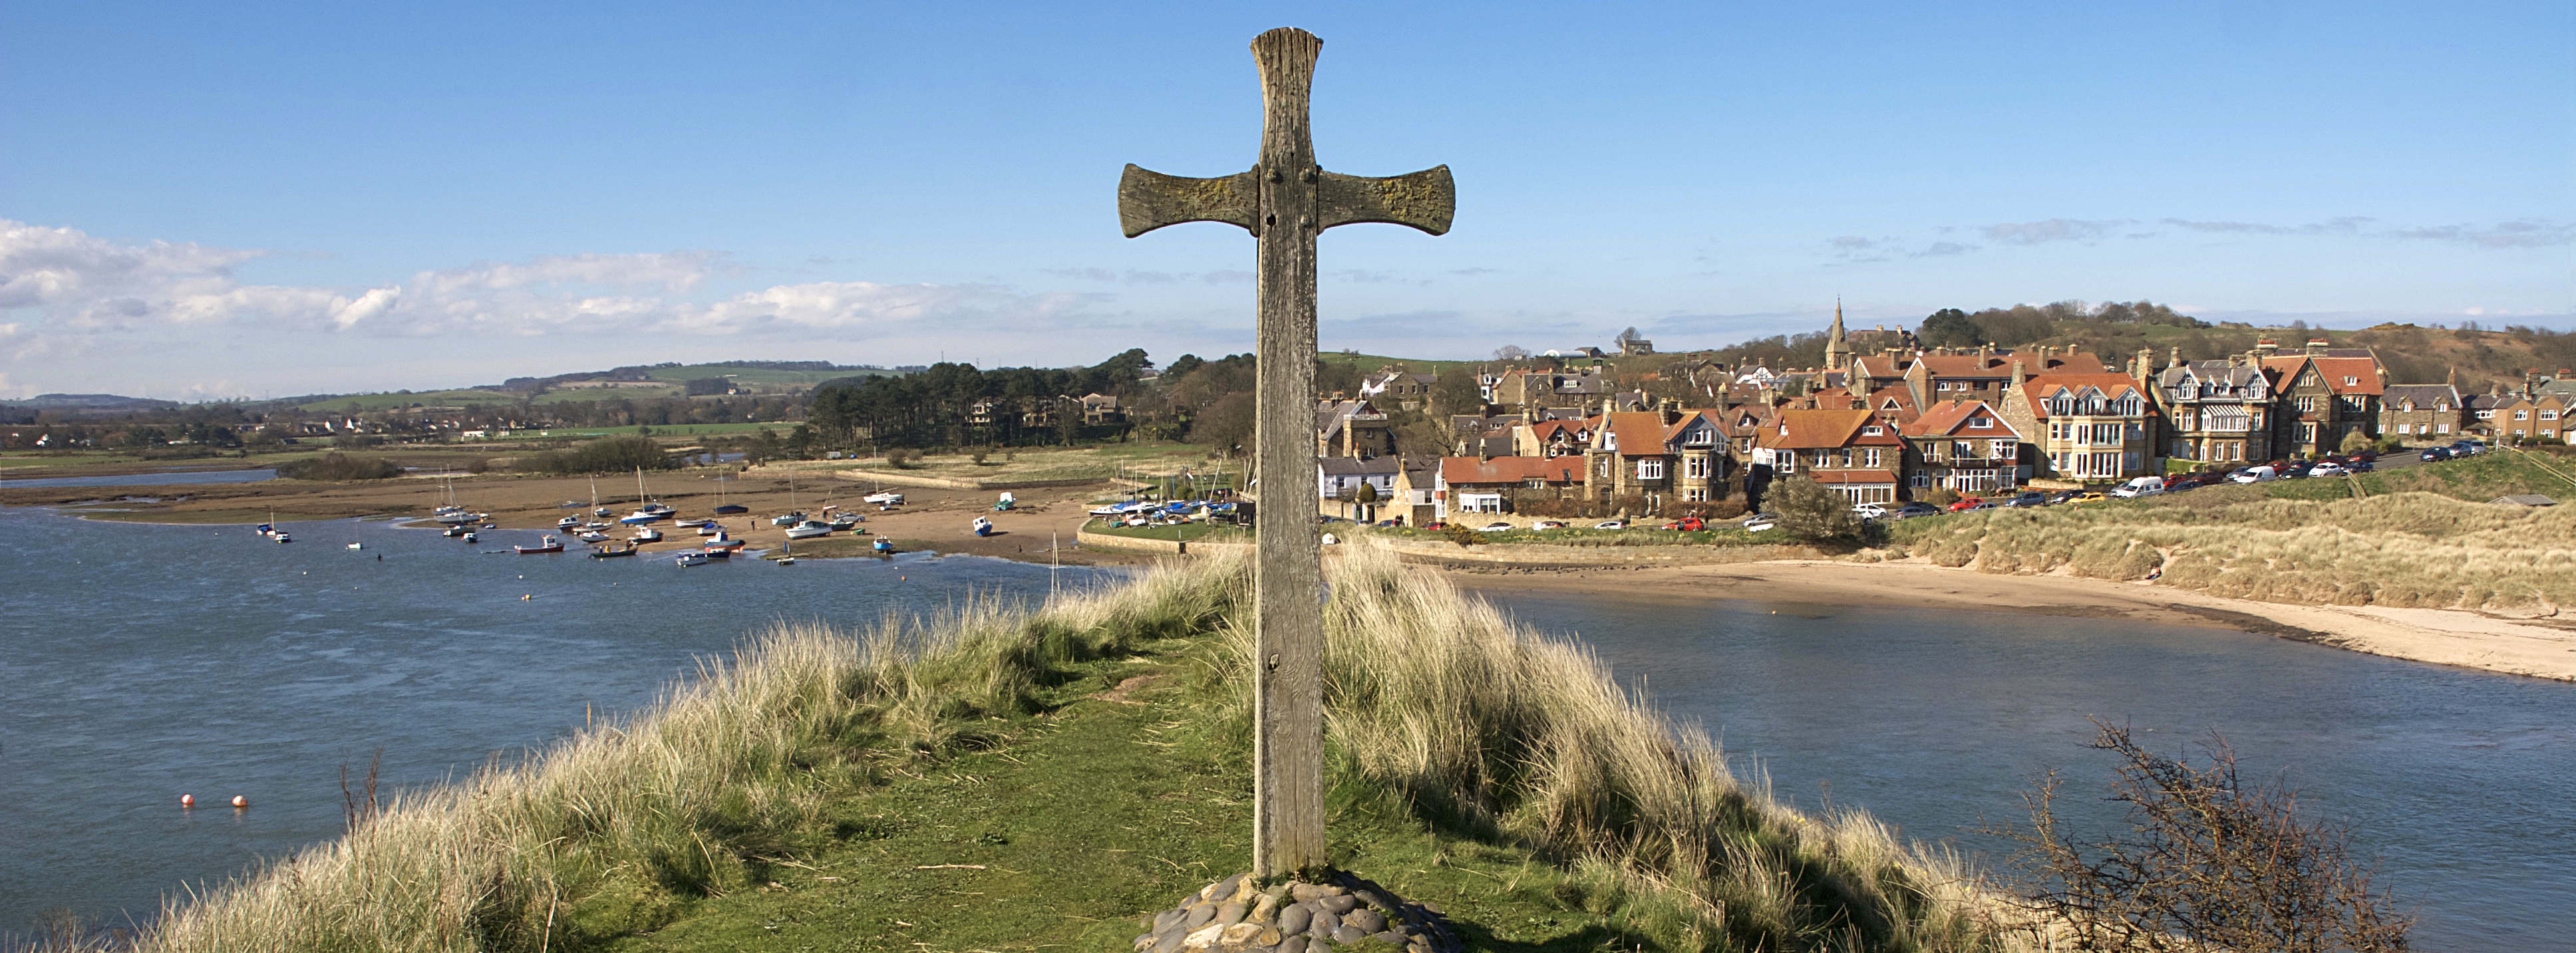 CCC028_Alnmouth